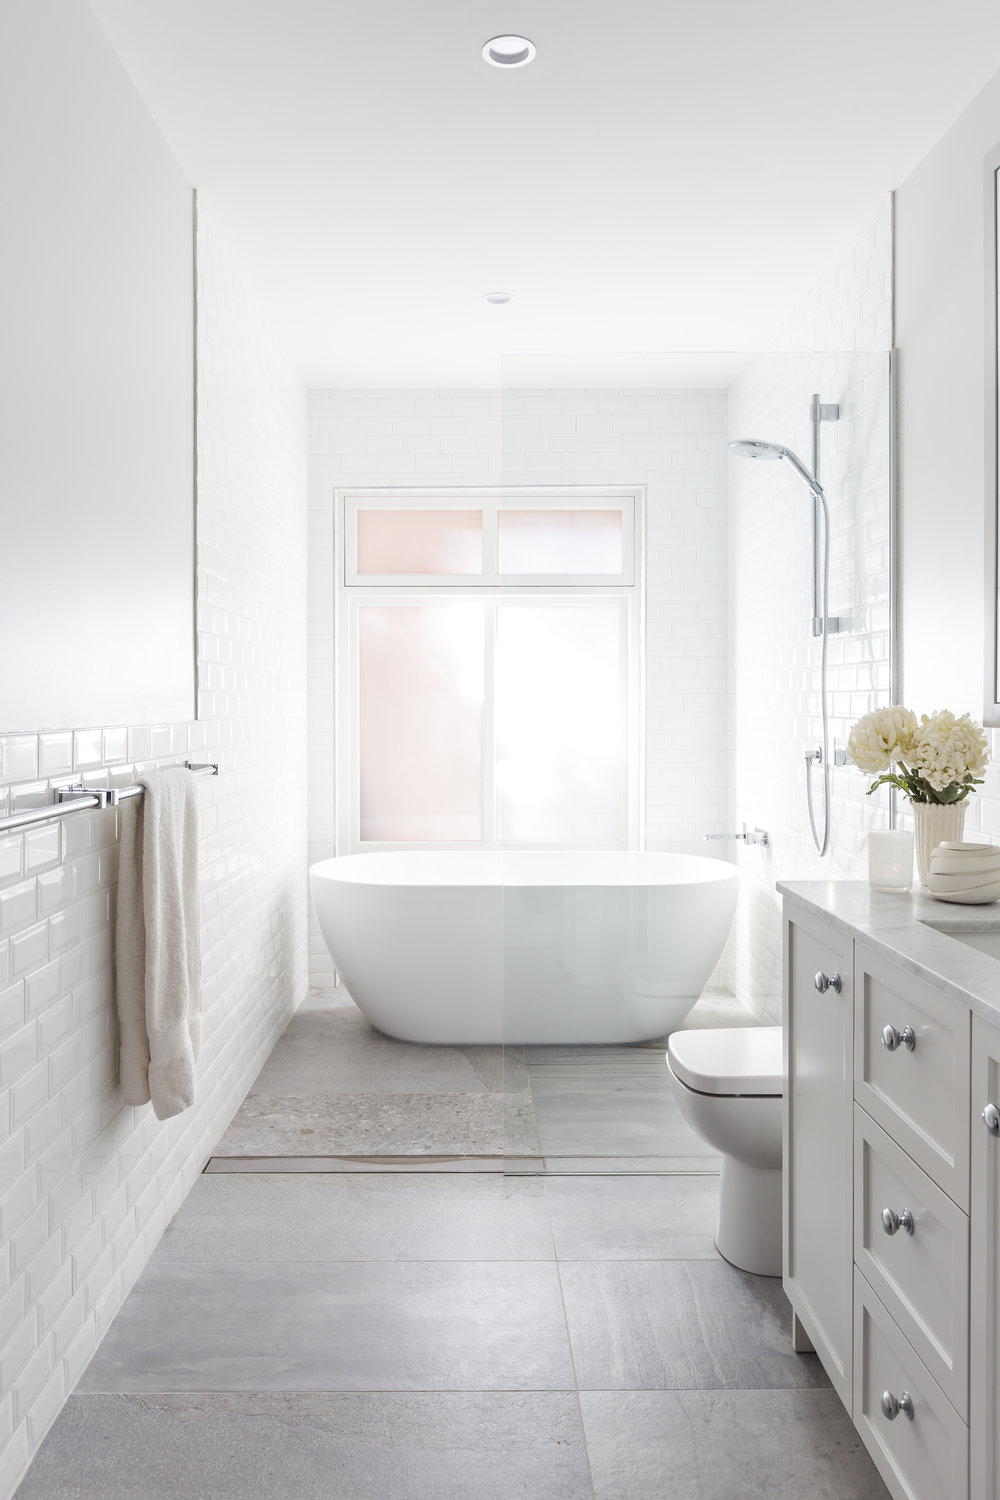 . . . and then post-lunch when somebunny else is soaking the dishes, we'll dream of sinking deep into the serenity of our Victoria Street guest bath. But shhhhh, it will be our  little secret.